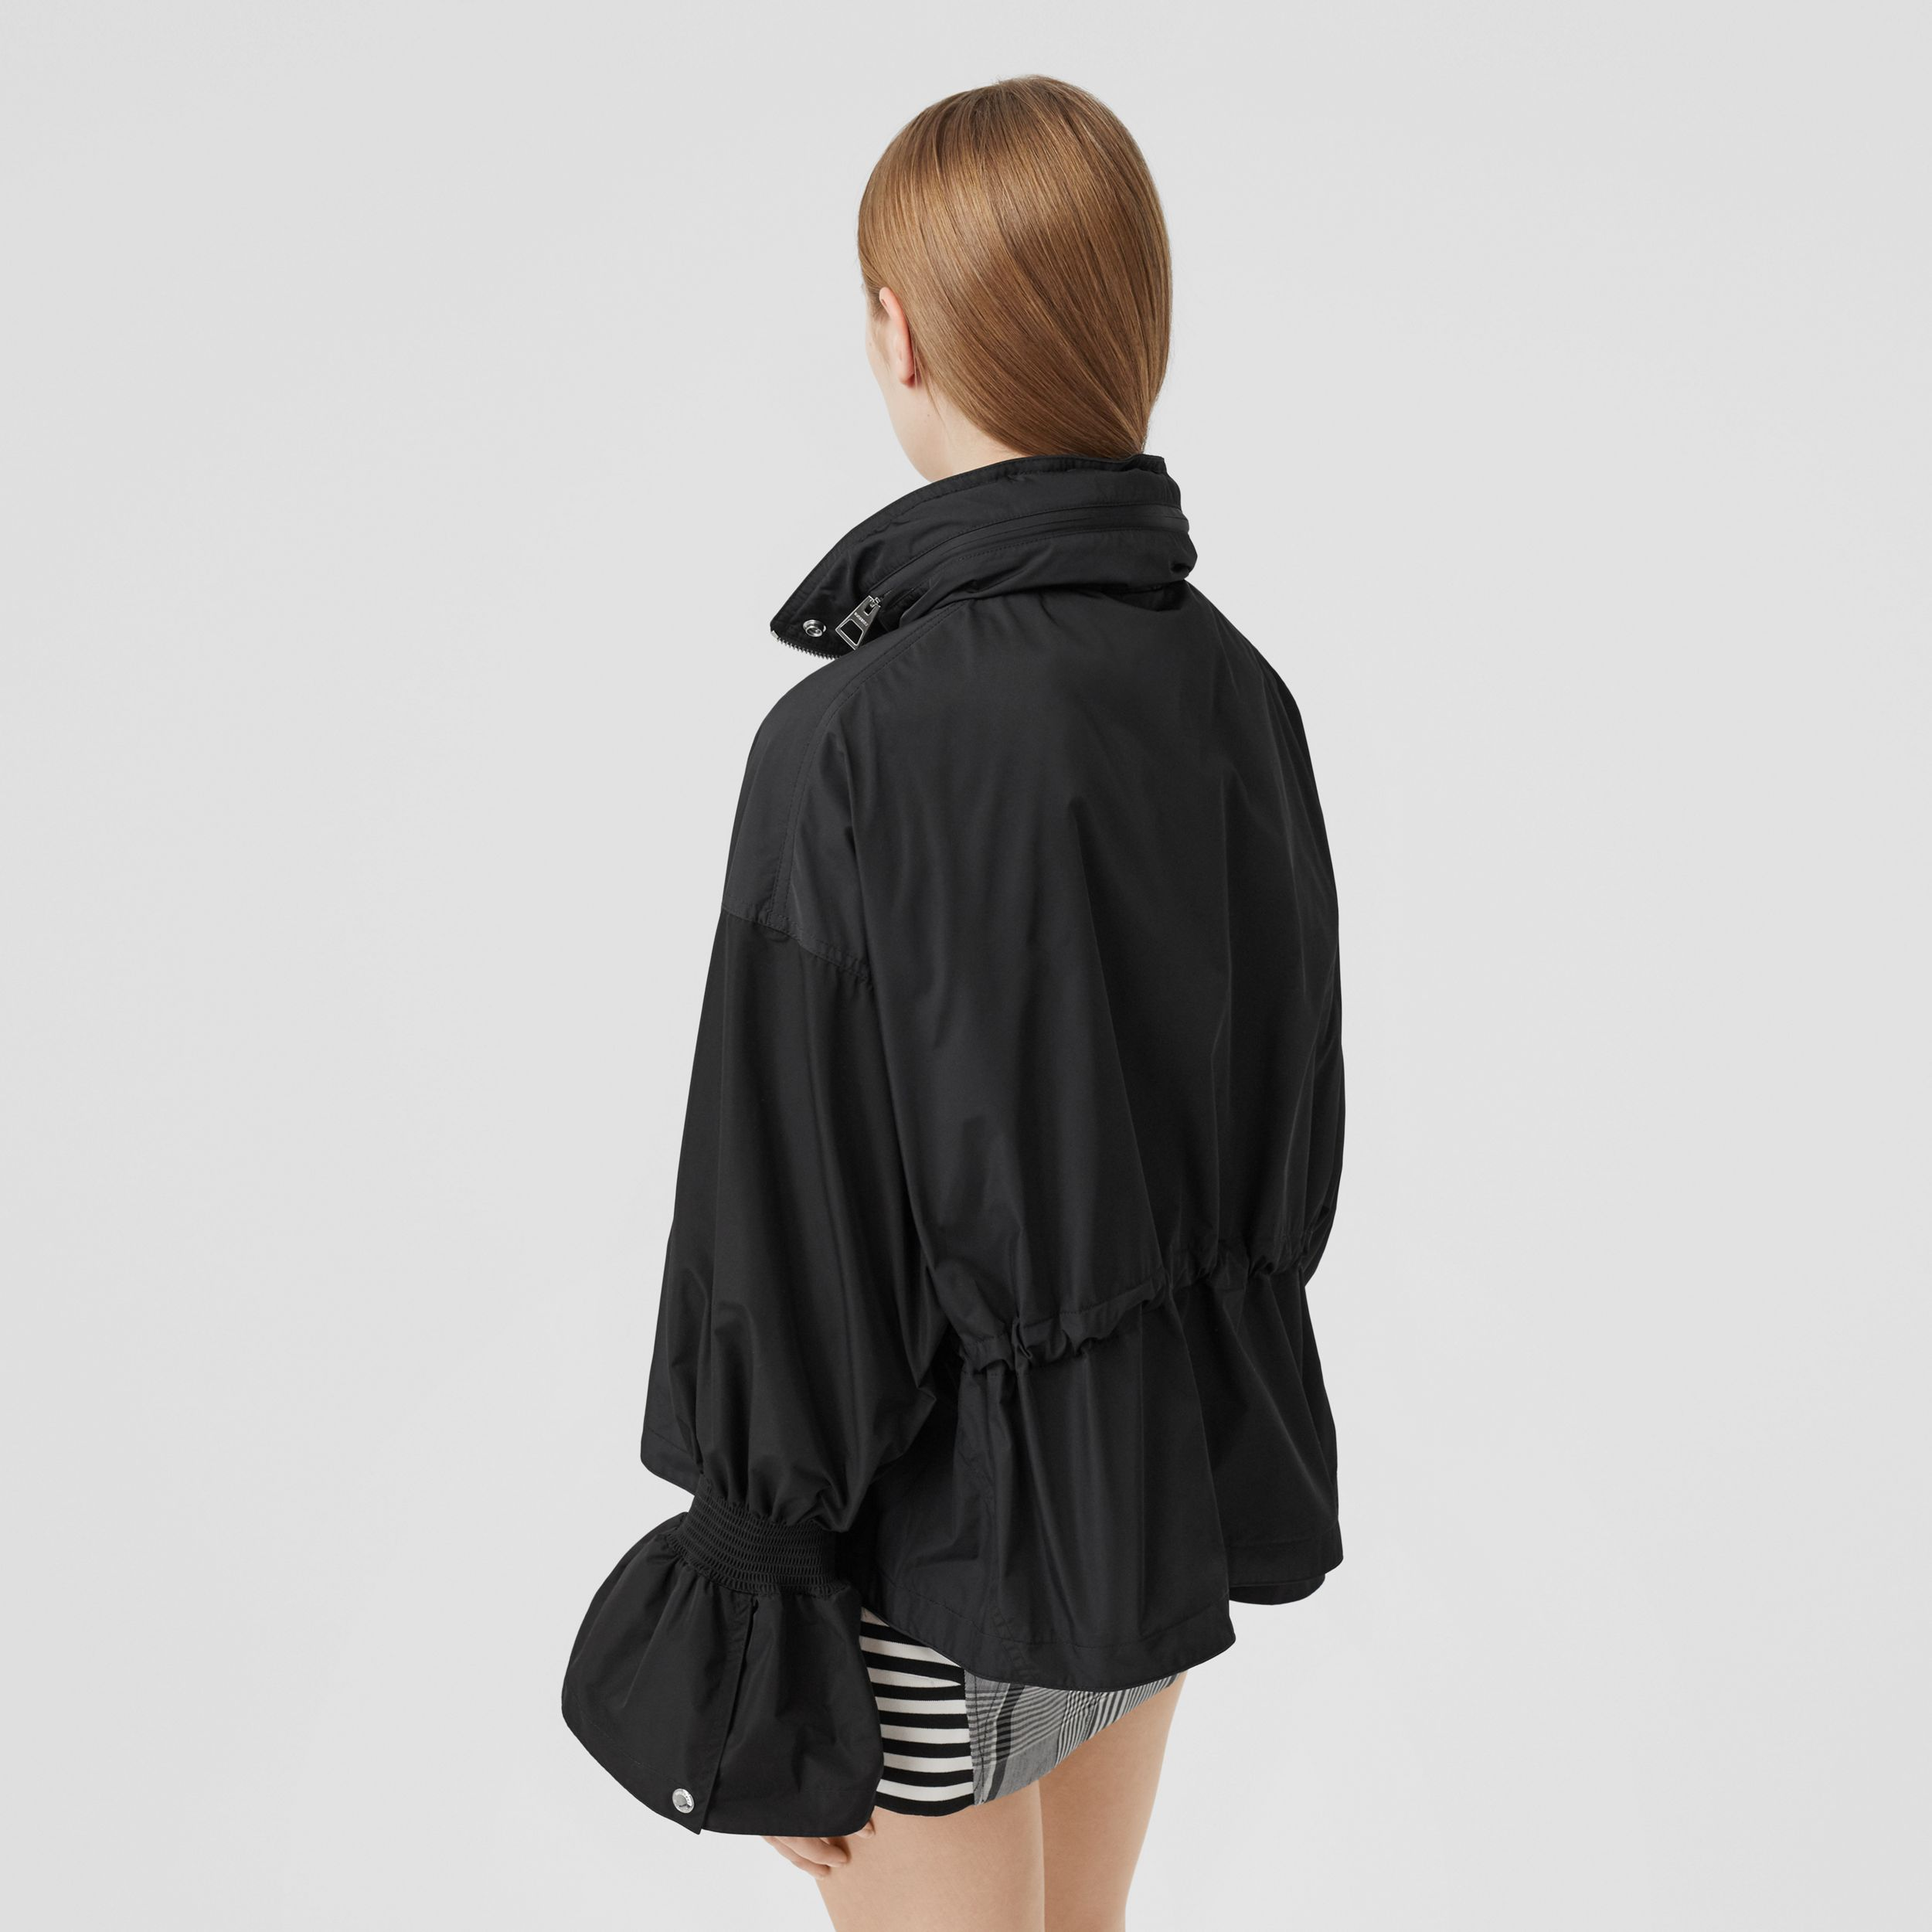 Packaway Hood Bio-based Nylon Jacket in Black - Women | Burberry - 3